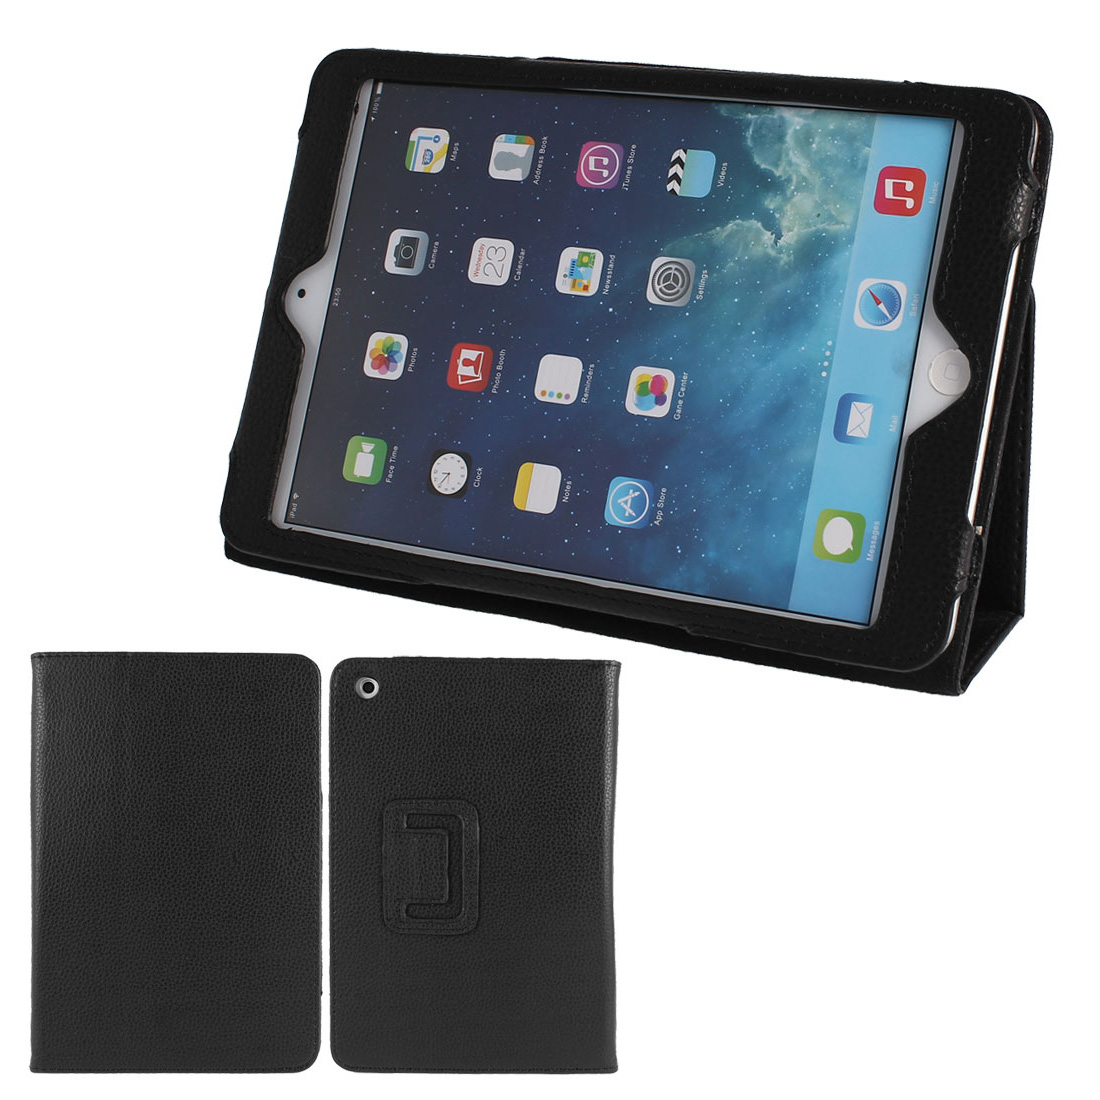 PU Leather Stand Magnet Folio Flip Tablet Protective Case Cover Black for iPad Mini 1 2